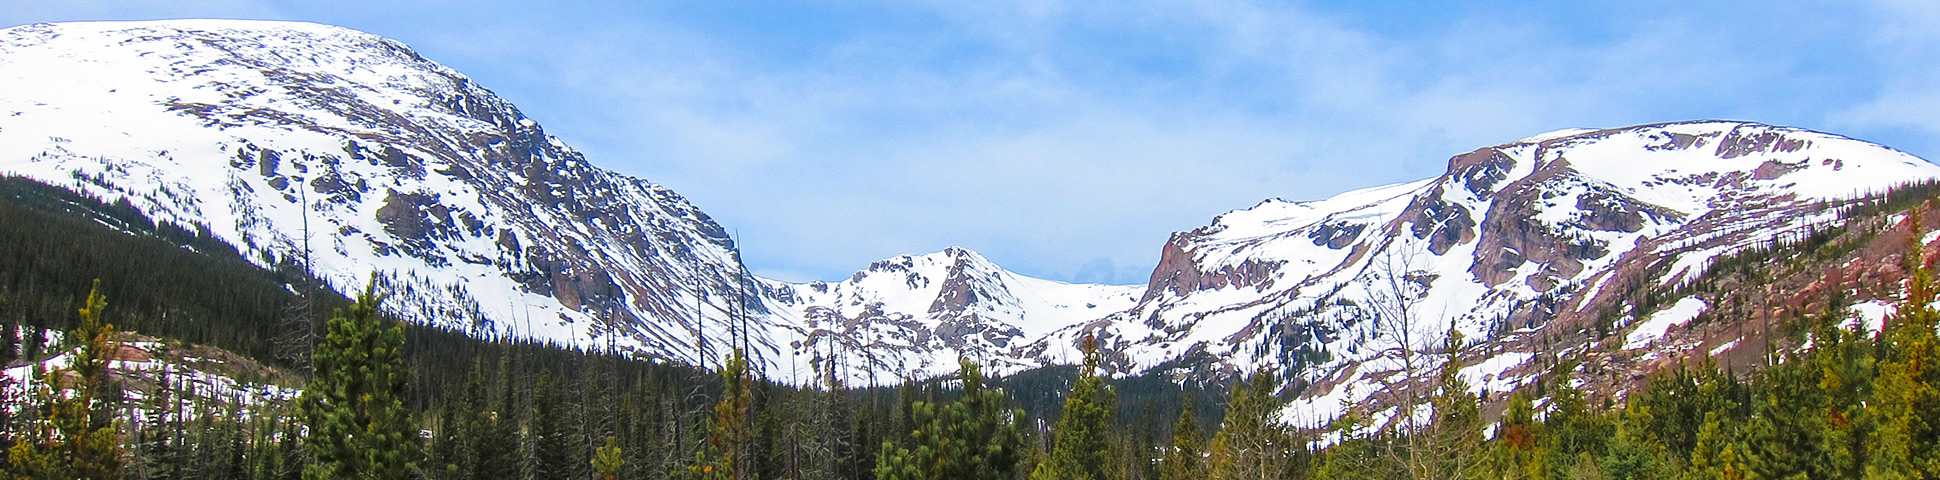 Panorama of Bluebird Lake hike in Rocky Mountain National Park, Colorado